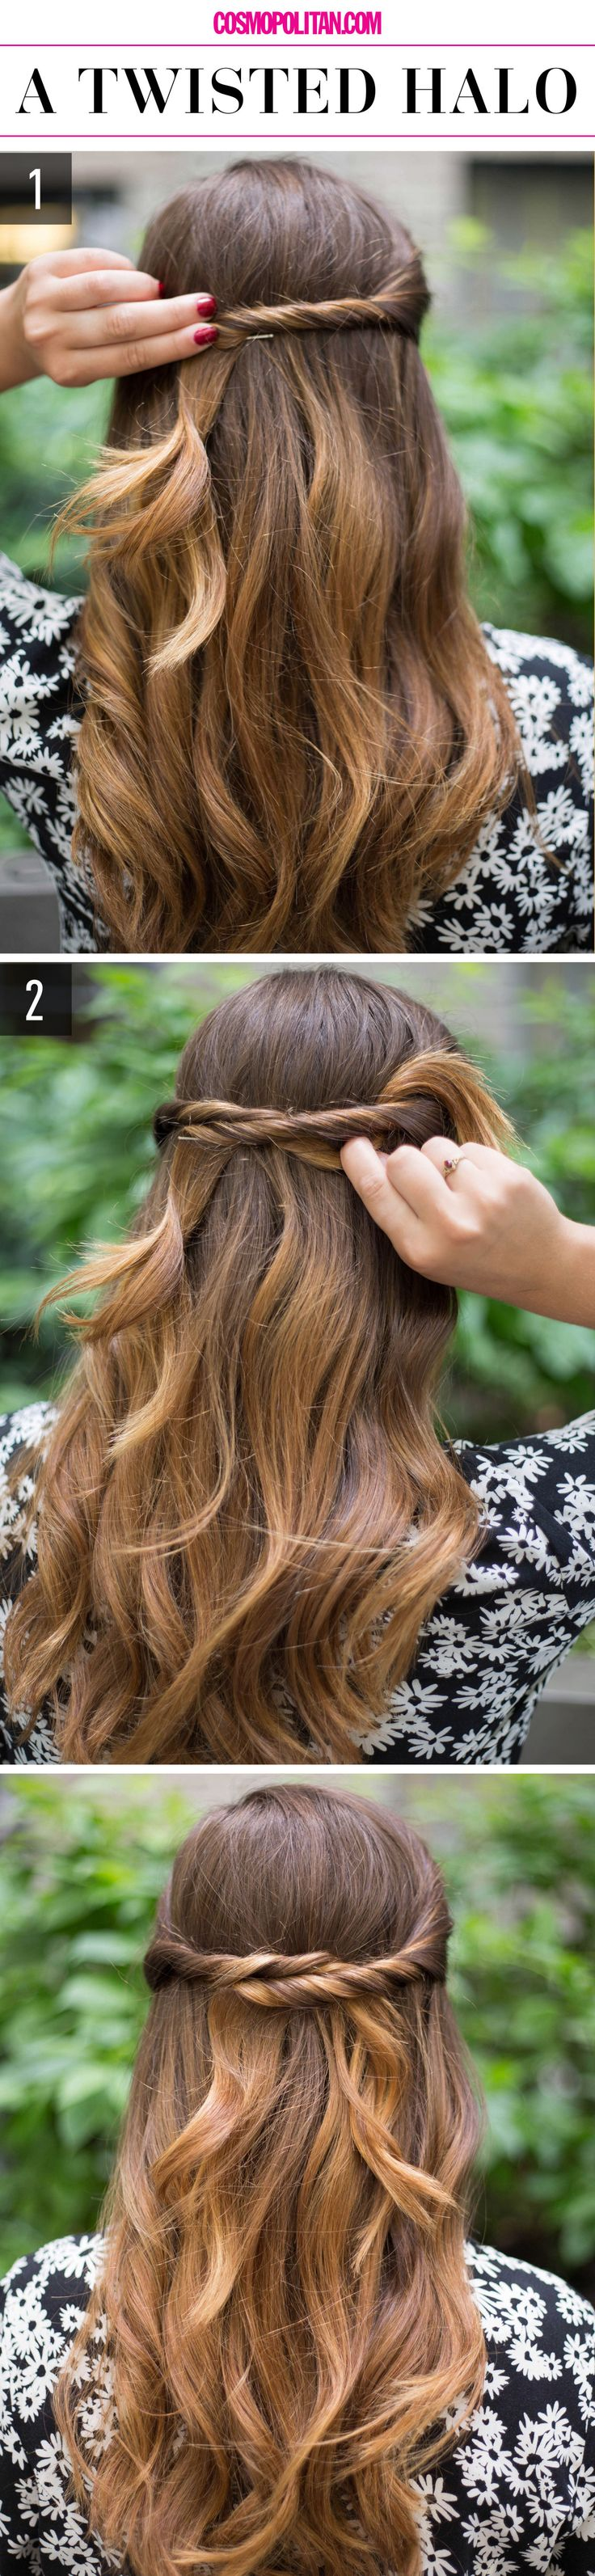 bag hardware 15 Super Easy Hairstyles for Lazy Girls Who Can  39 t Even   Cosmopolitan com